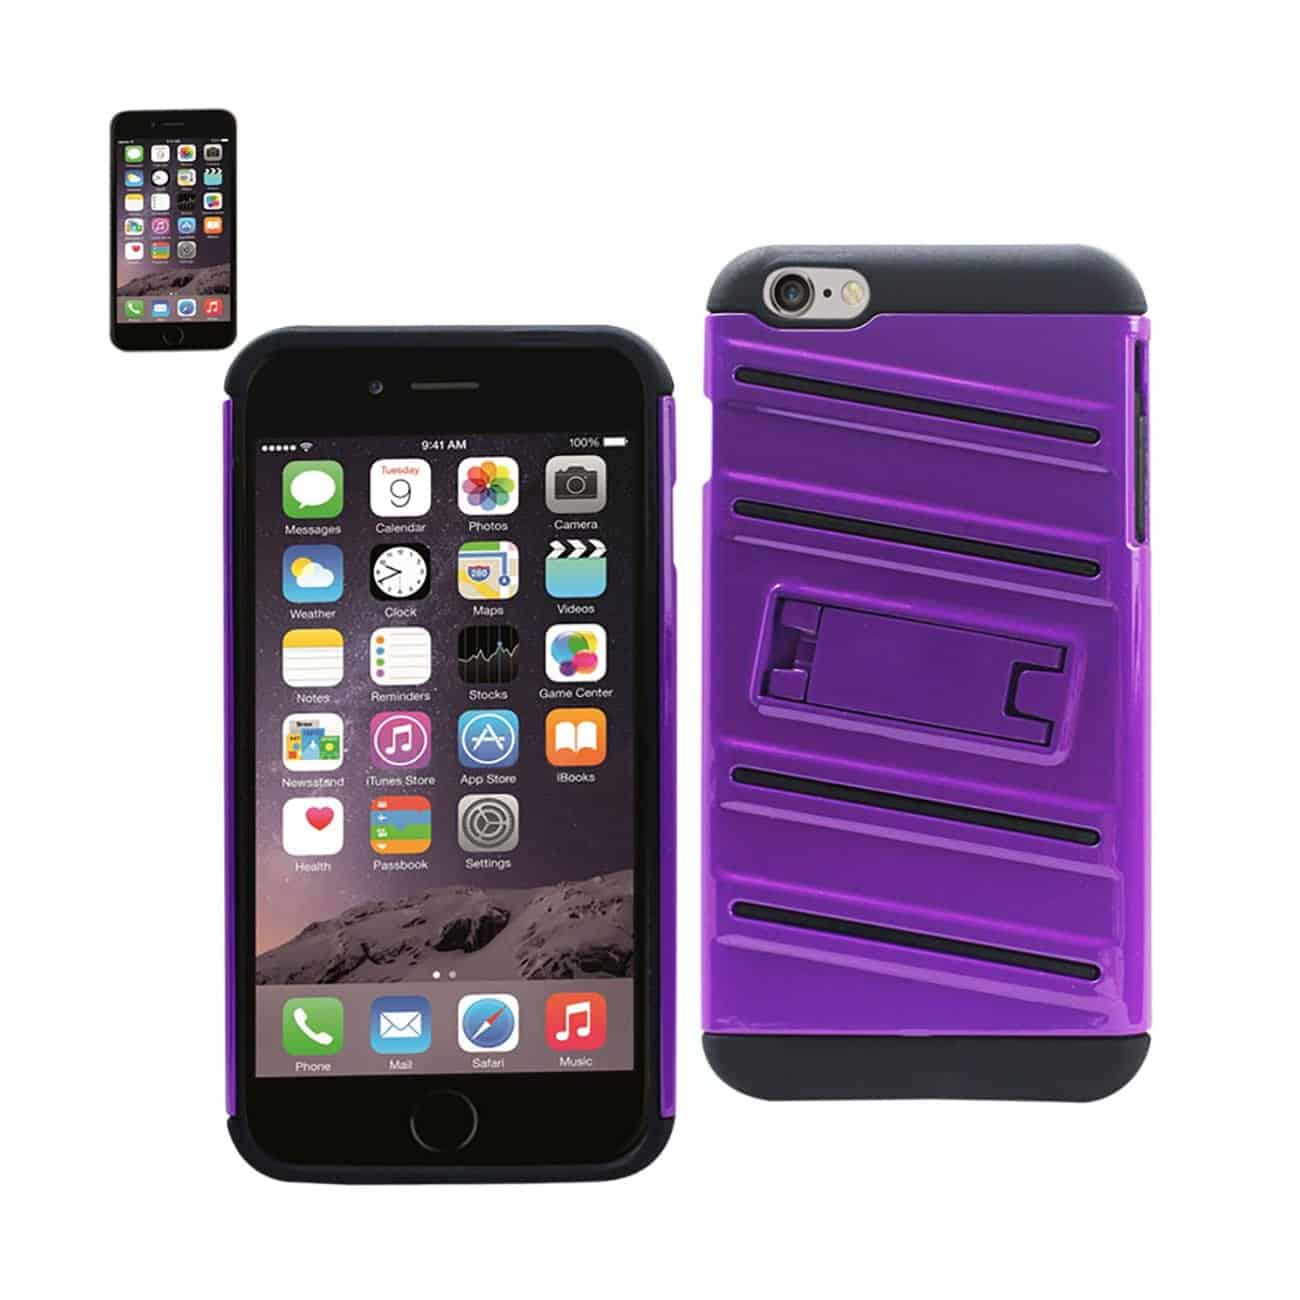 IPHONE 6 PLUS HYBRID FISHBONE CASE WITH KICKSTAND IN BLACK PURPLE